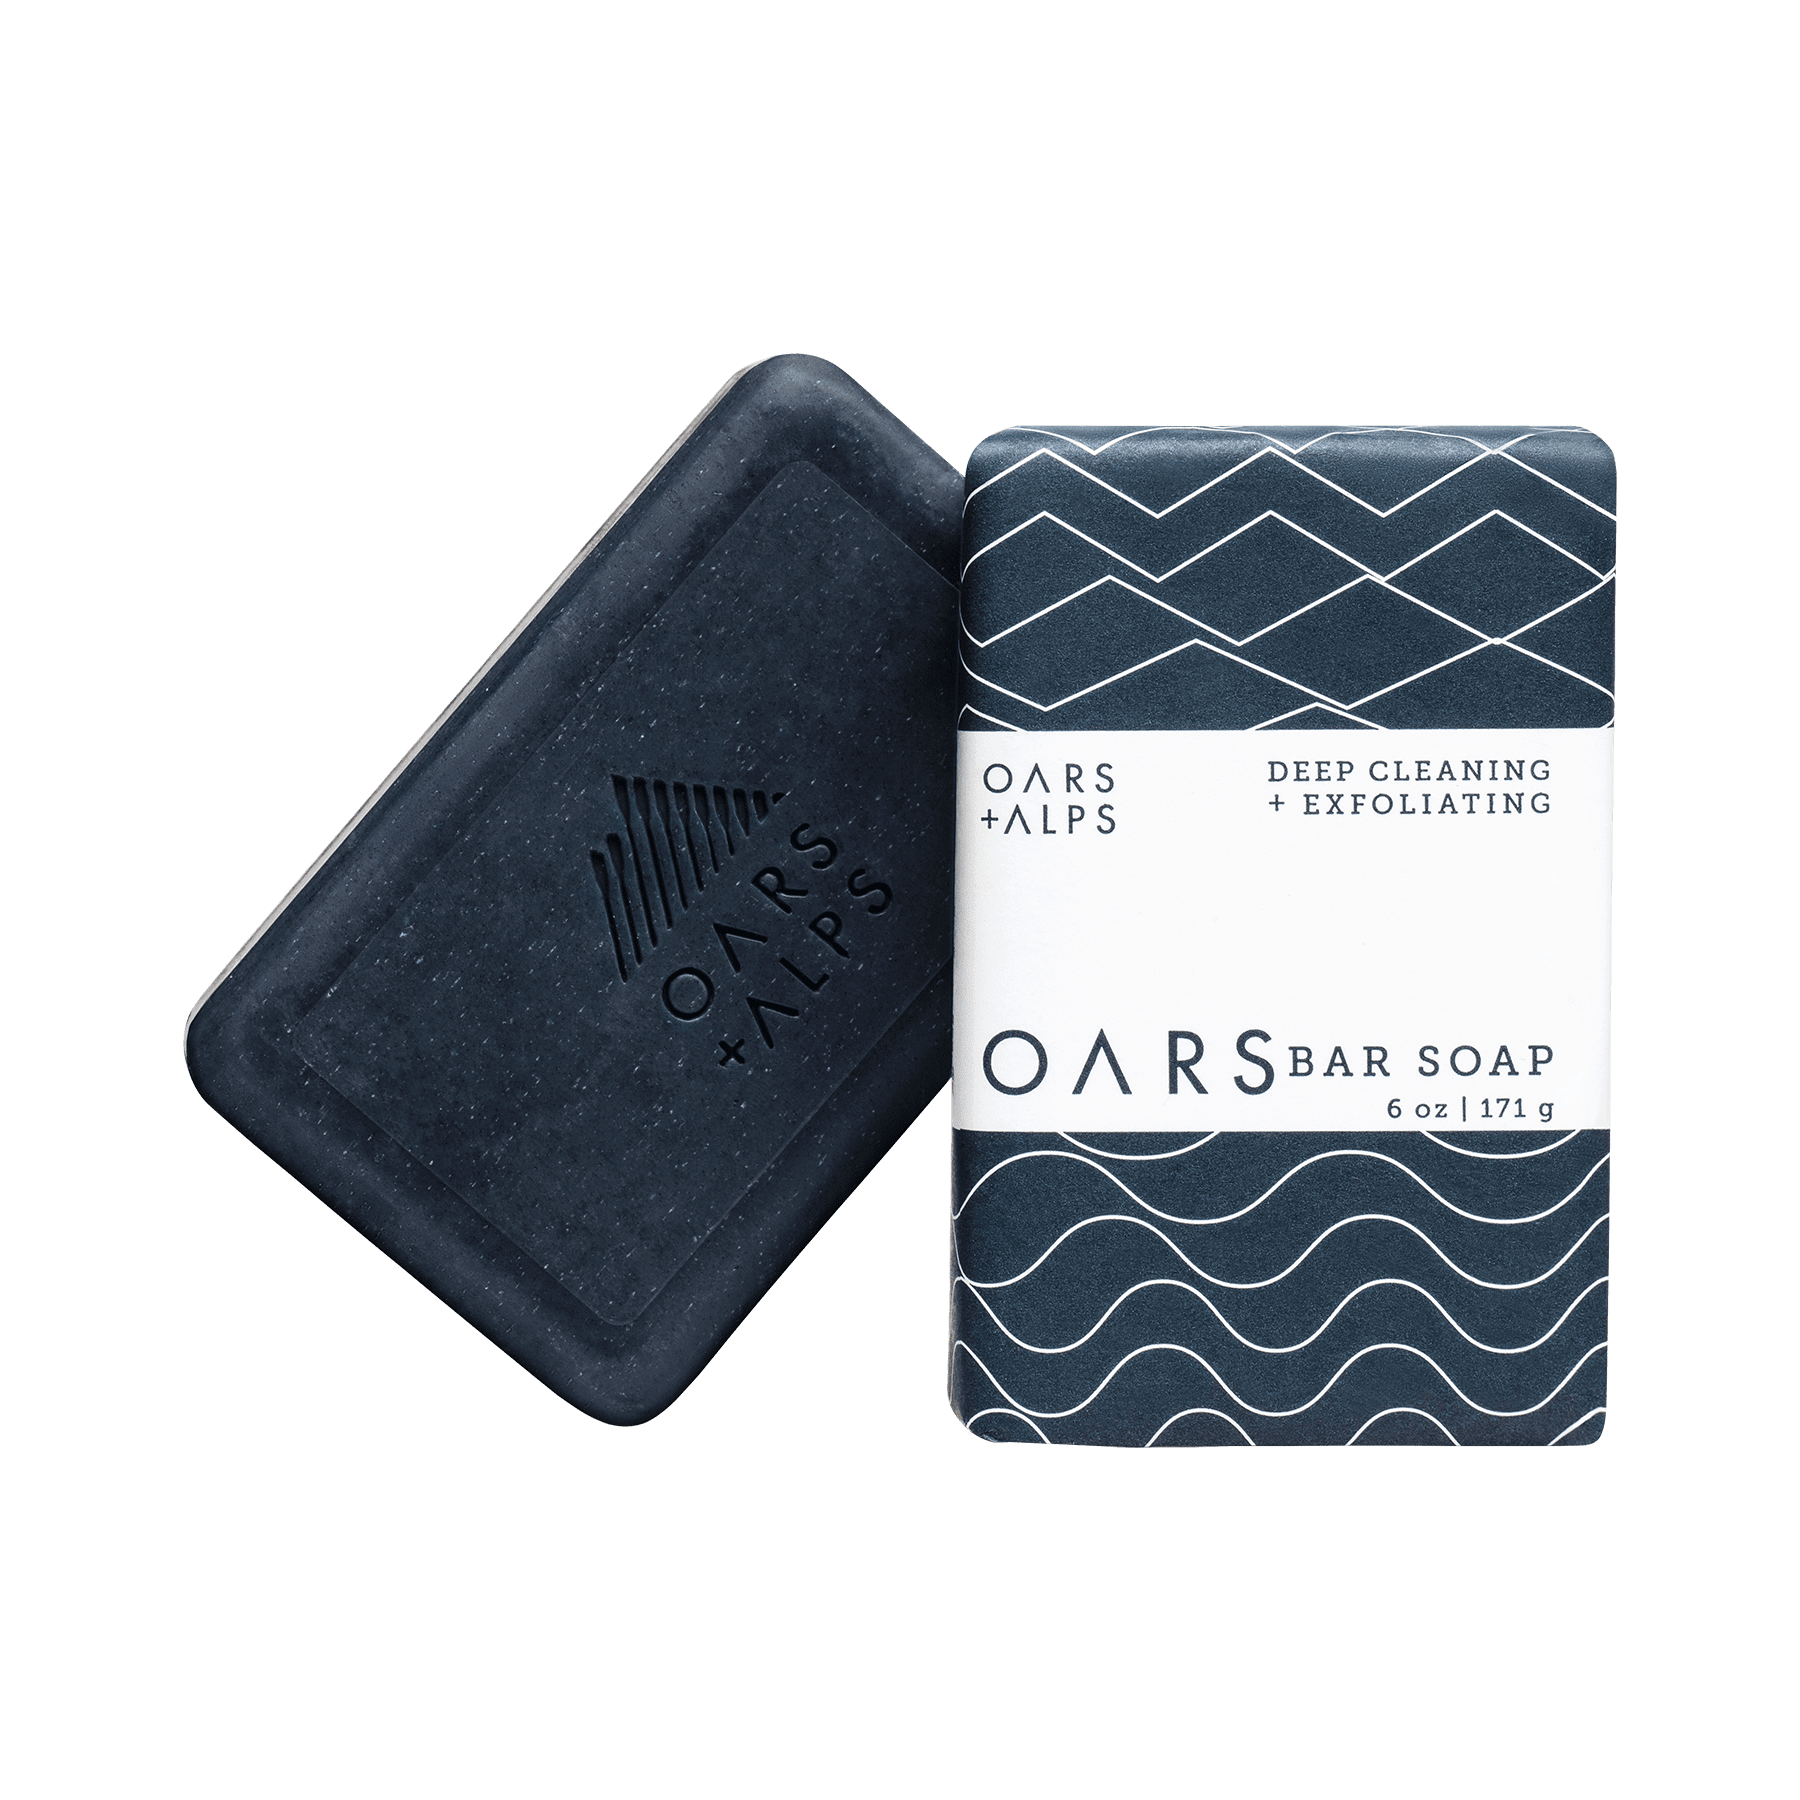 Blue Charcoal Oars Bar Soap